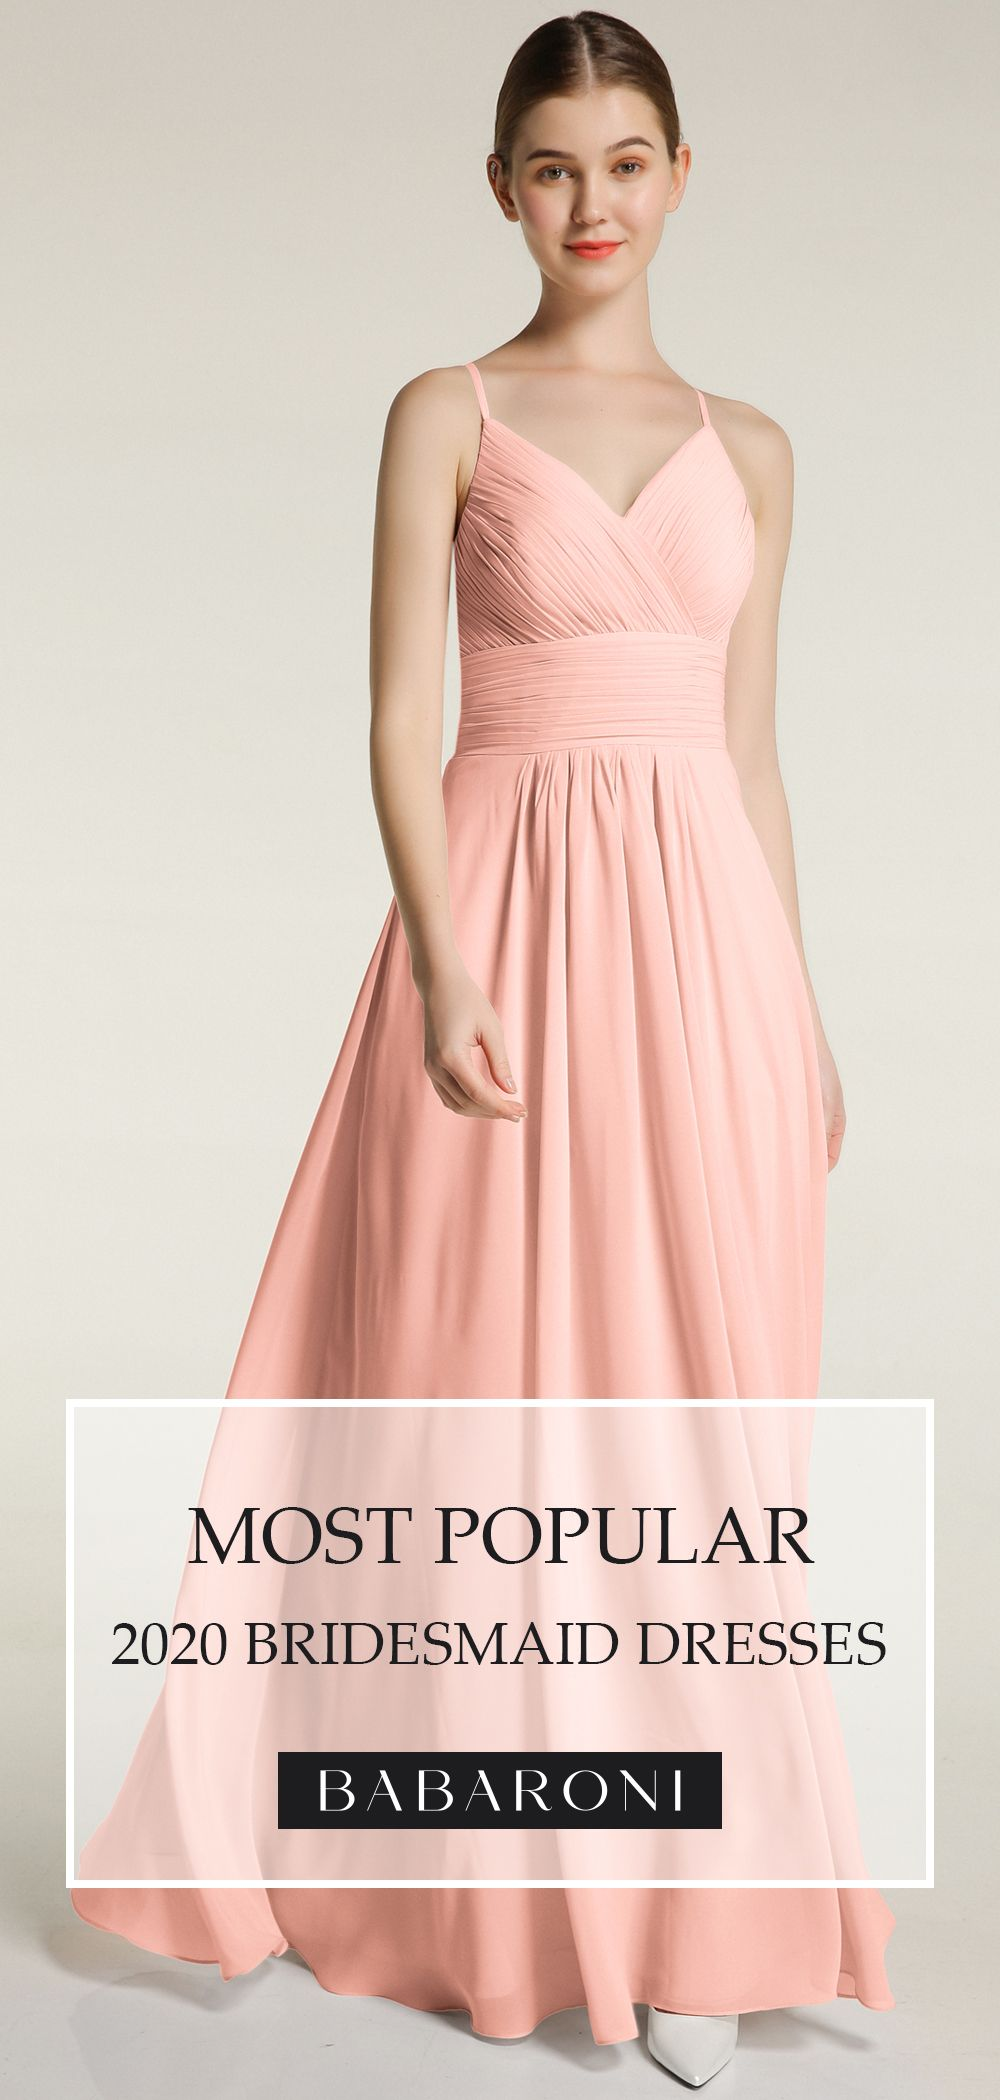 Charming Coral Color Lovely Spaghetti Strap Bridesmaid Dress With Pockets In 2020 Dresses Spaghetti Strap Bridesmaids Dresses Bridesmaid Dresses